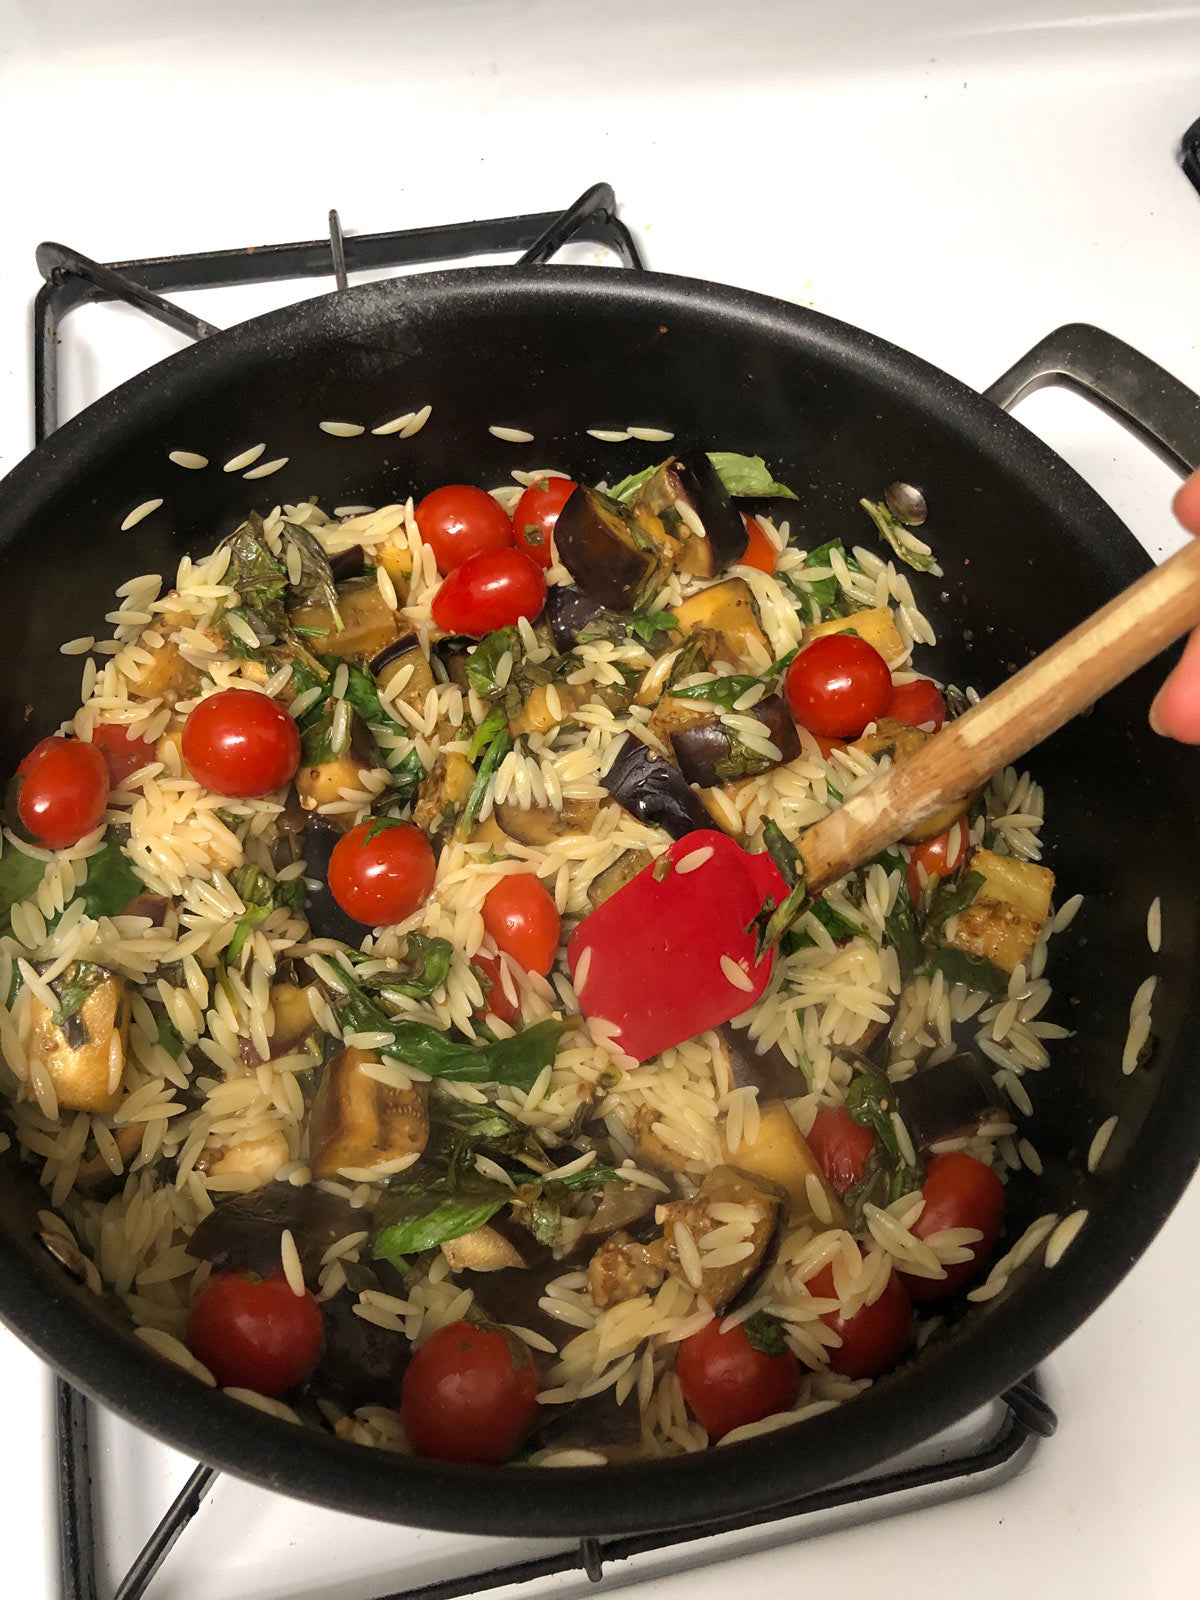 Eggplant with tomatoes and orzo in pan